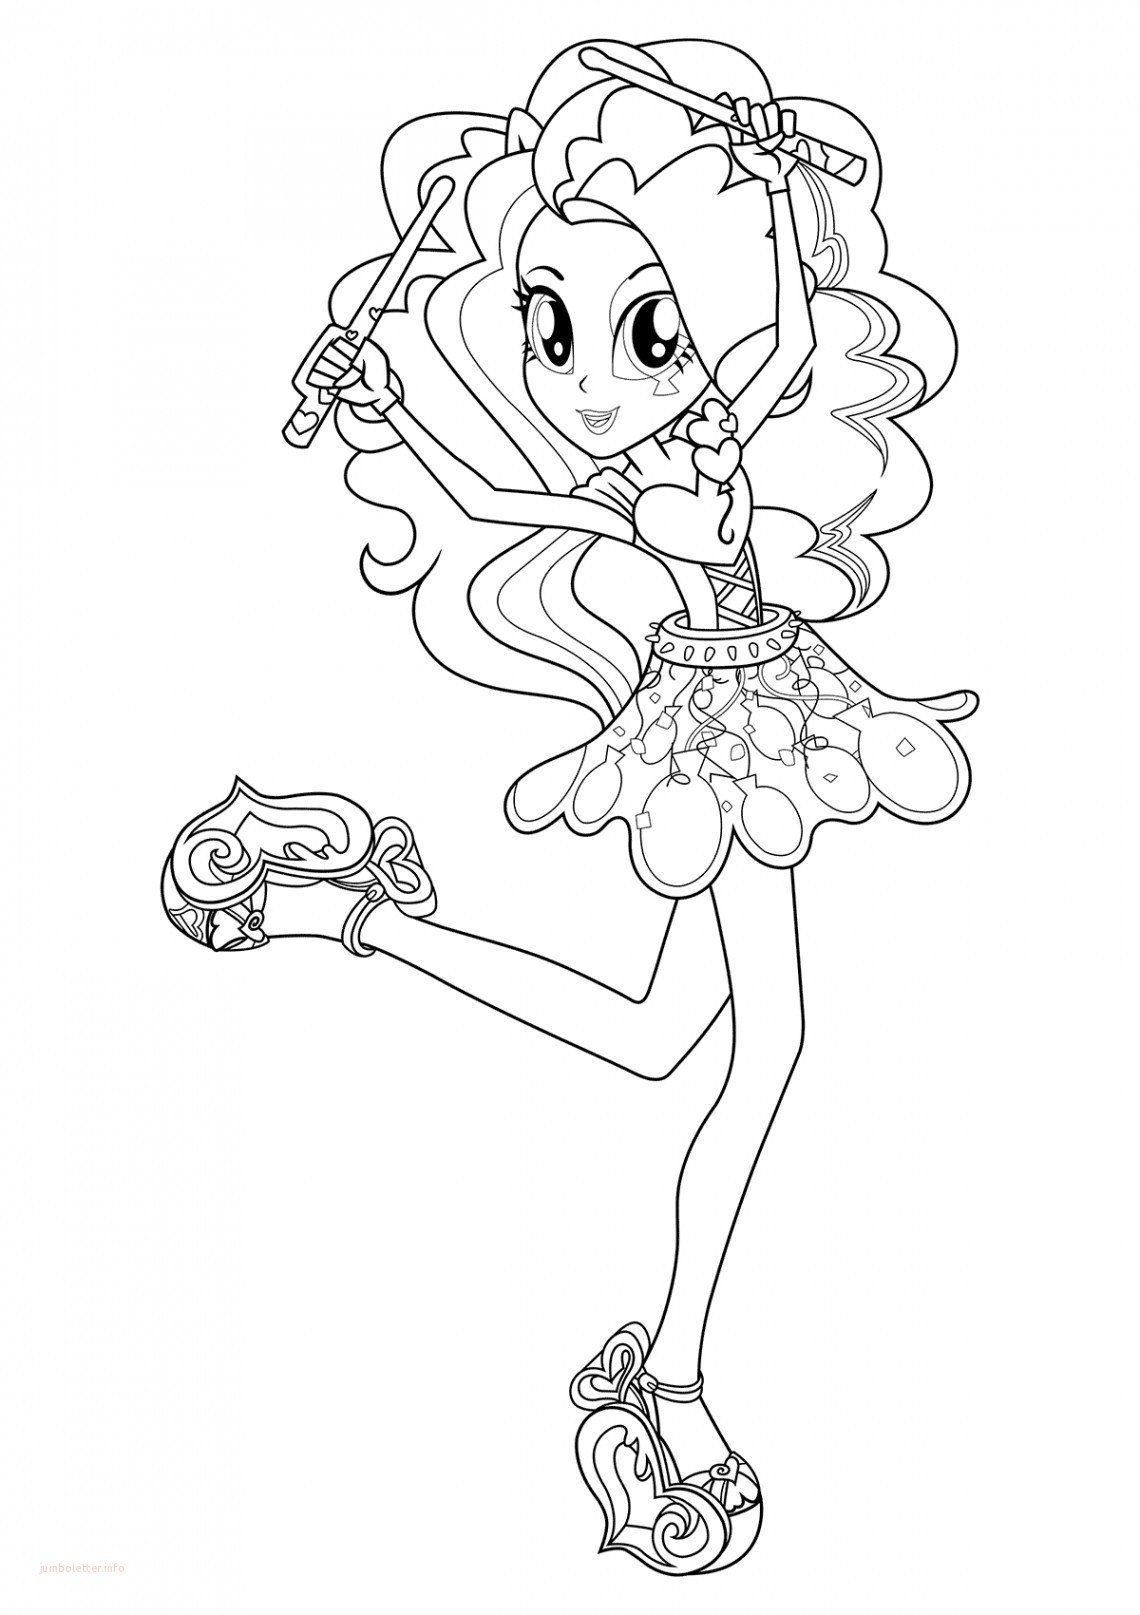 Equestria Girls Coloring Pages Beautiful 25 Rainbow Rock Coloring Pages Collection Colorin In 2020 My Little Pony Coloring Cute Coloring Pages Coloring Pages For Girls